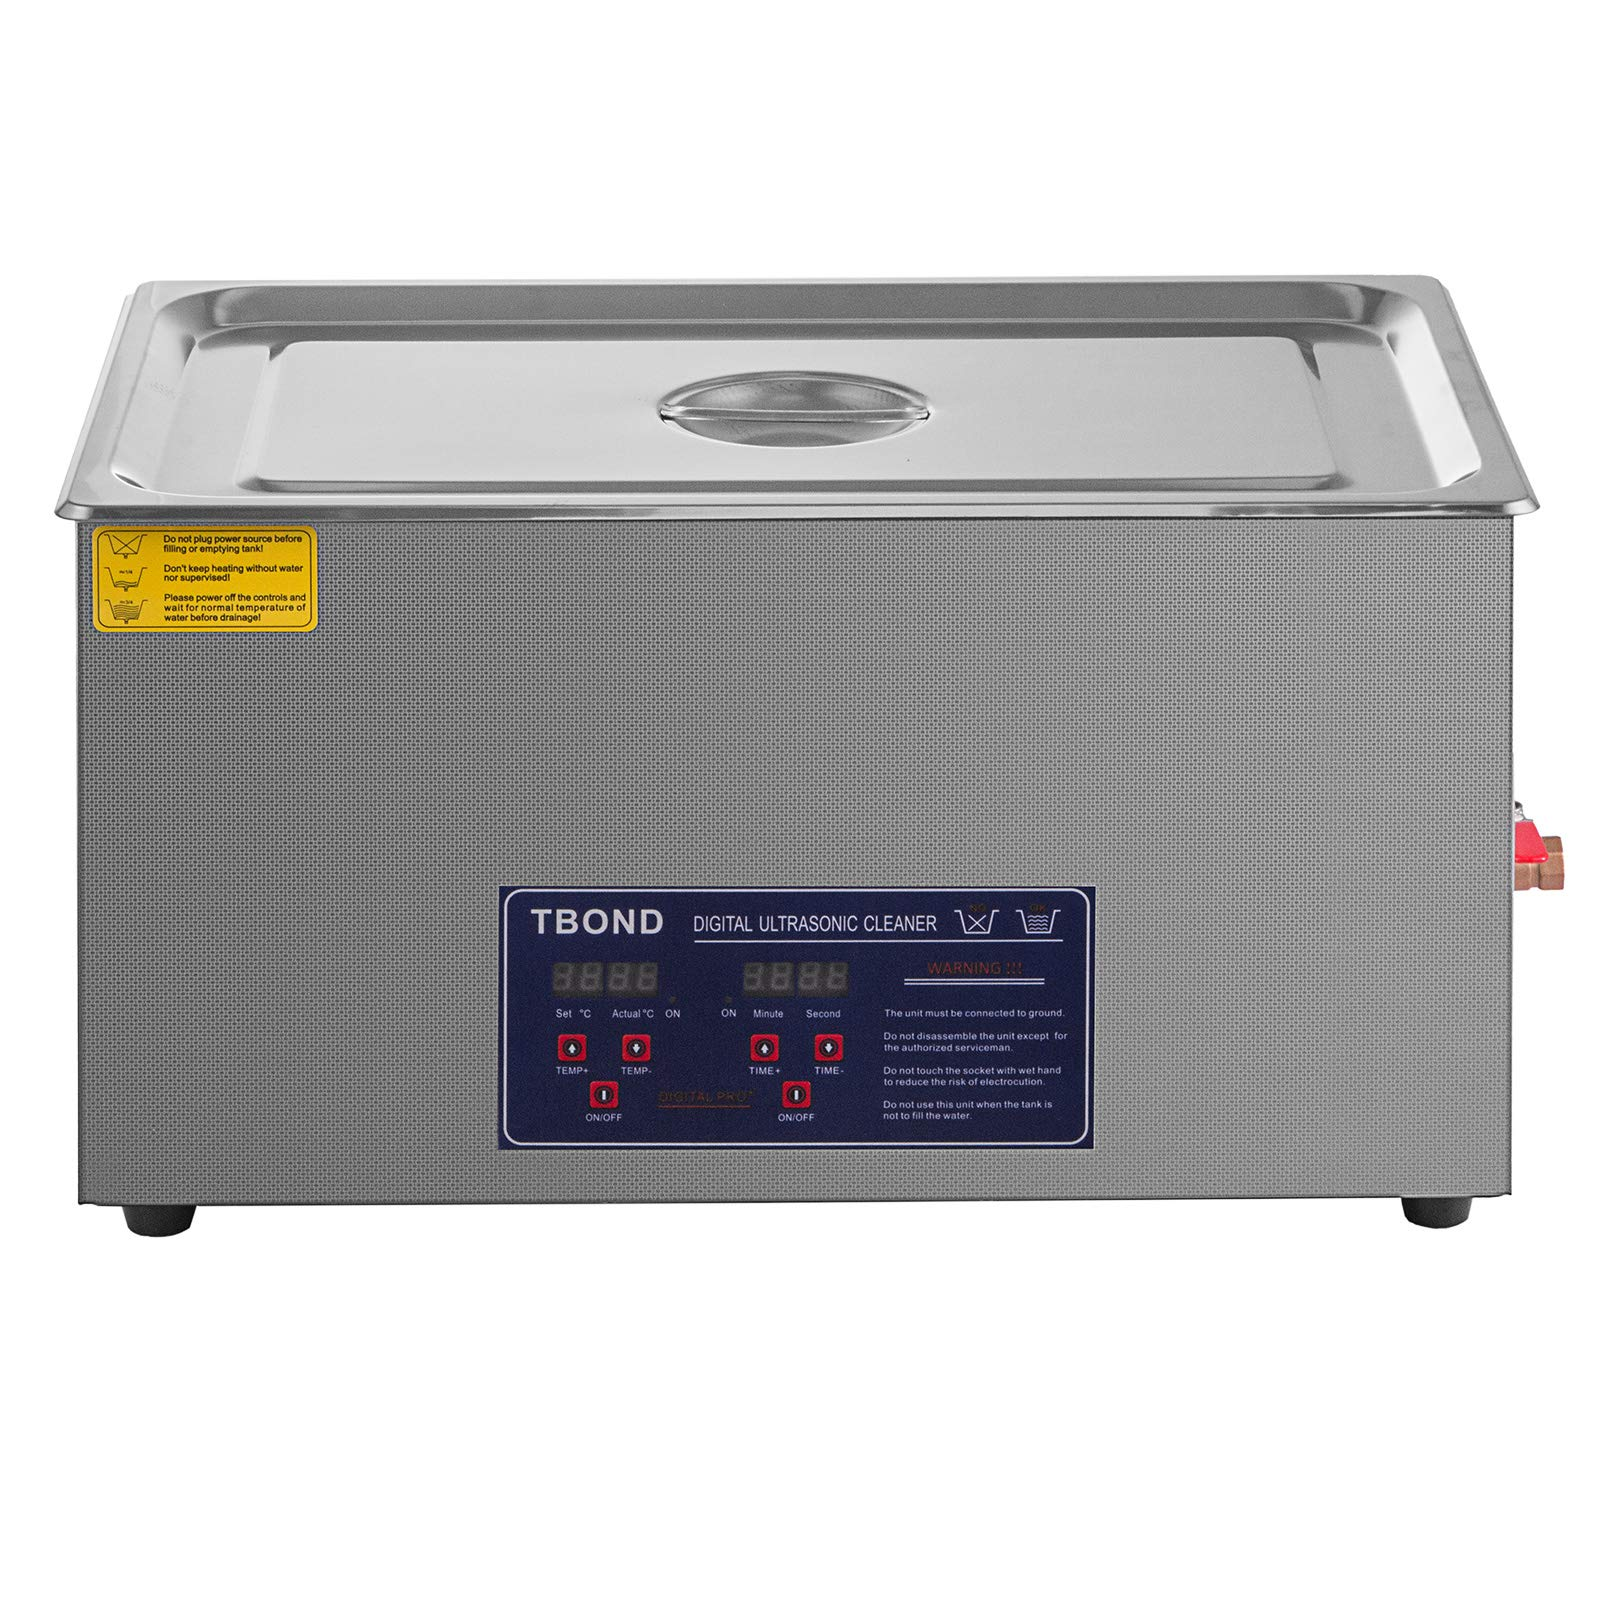 SHZOND Ultrasonic Cleaner Stainless Temperature